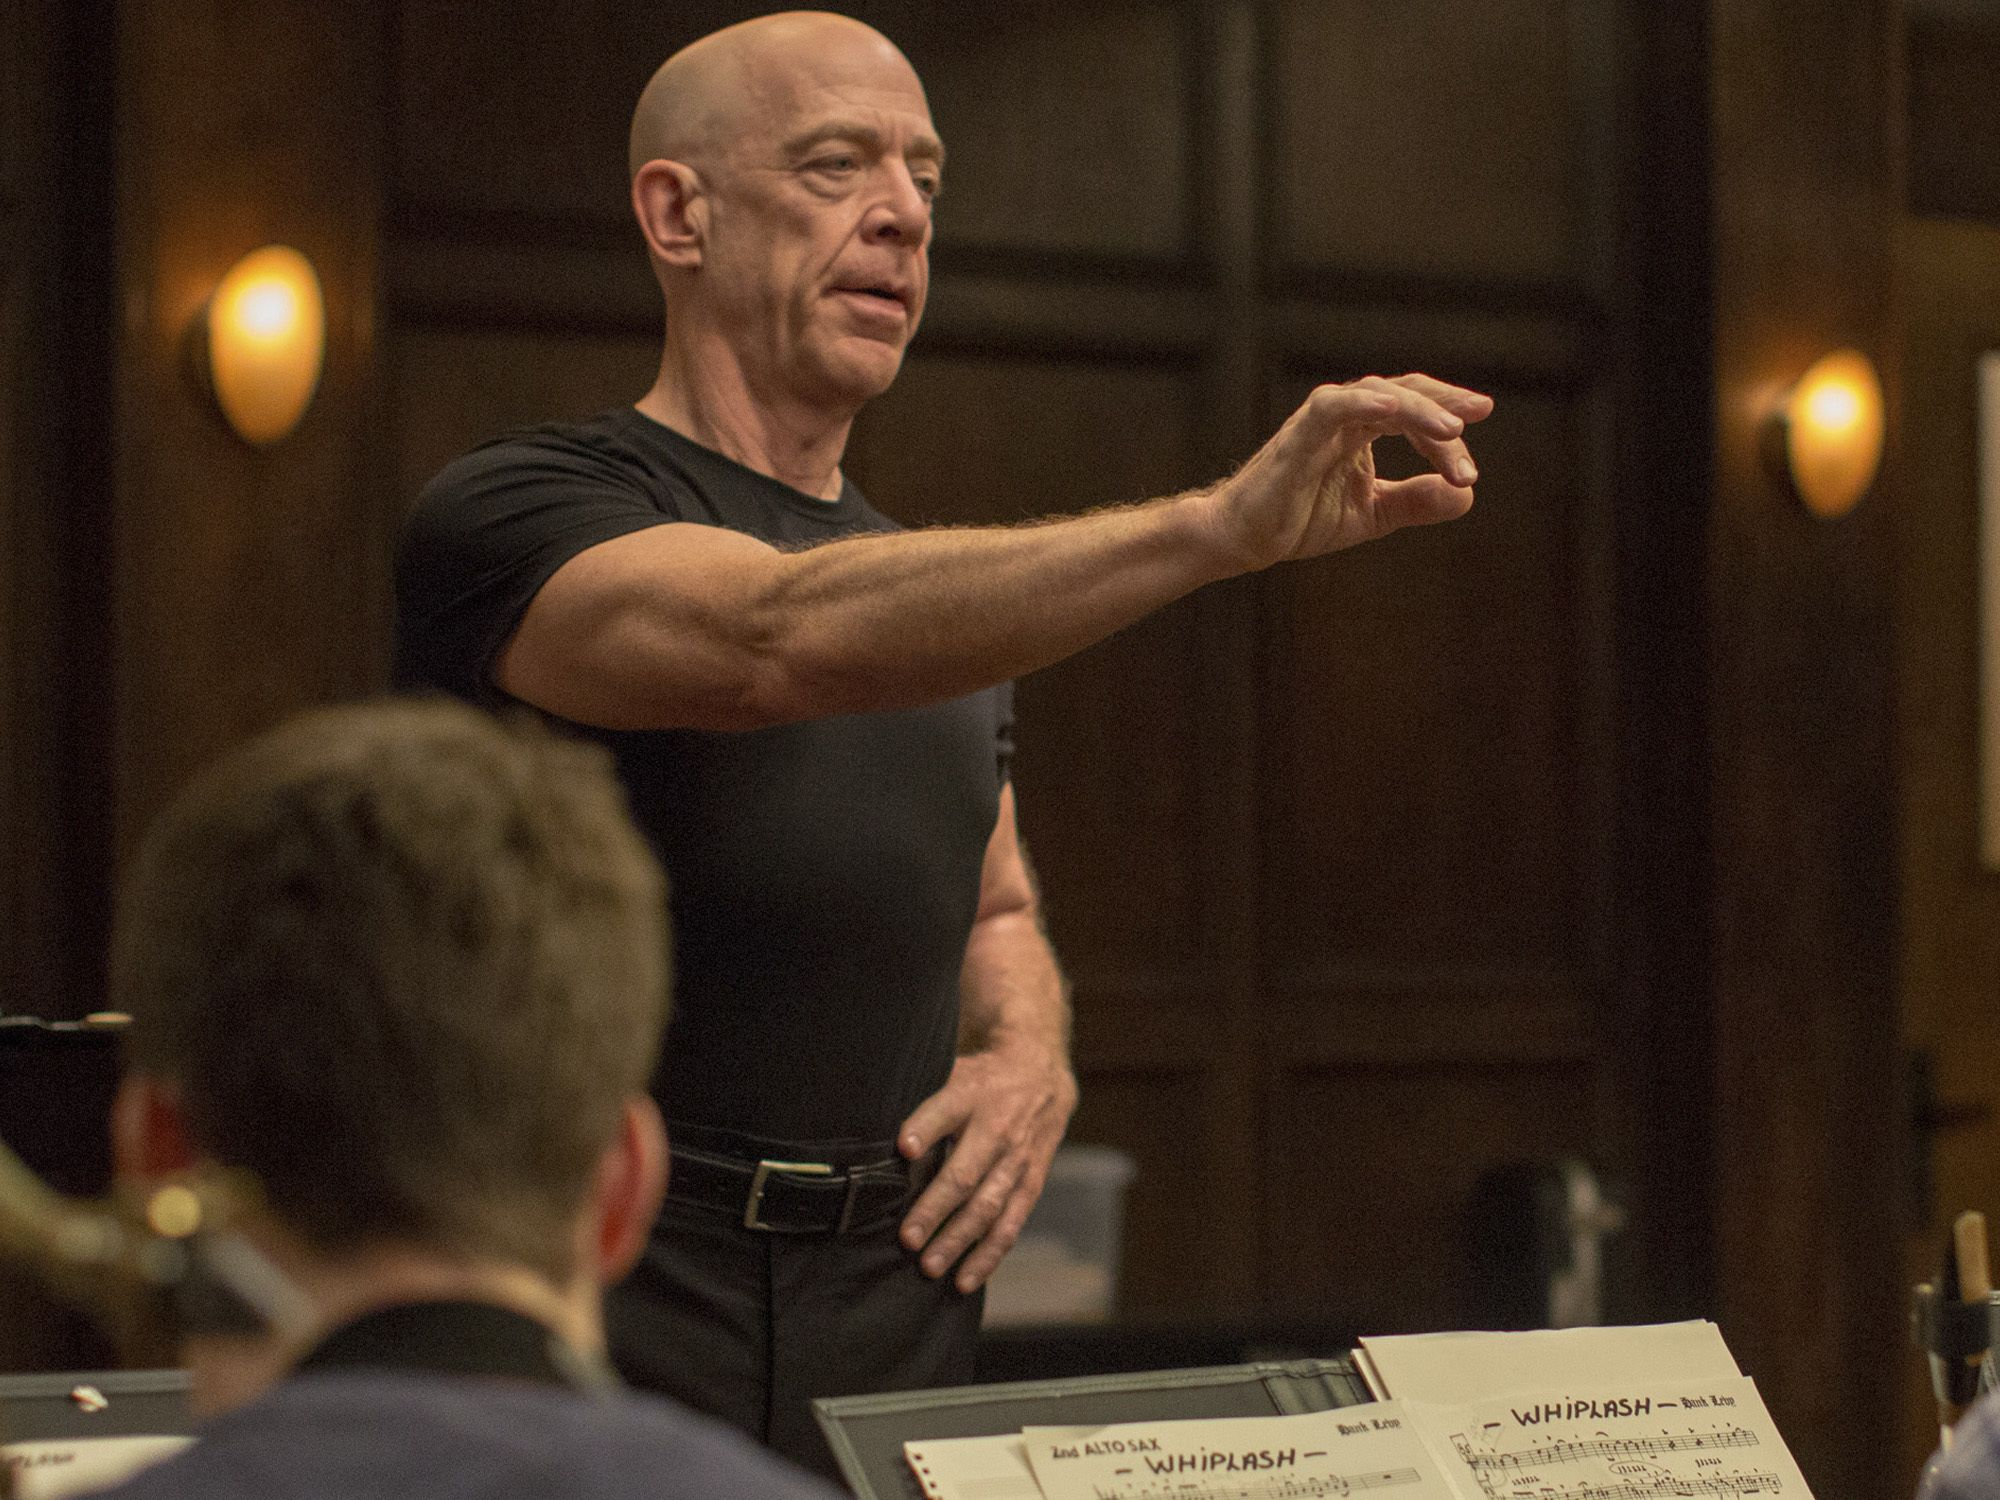 JK Simmons Whiplash Roles That Actors Absolutely Crushed